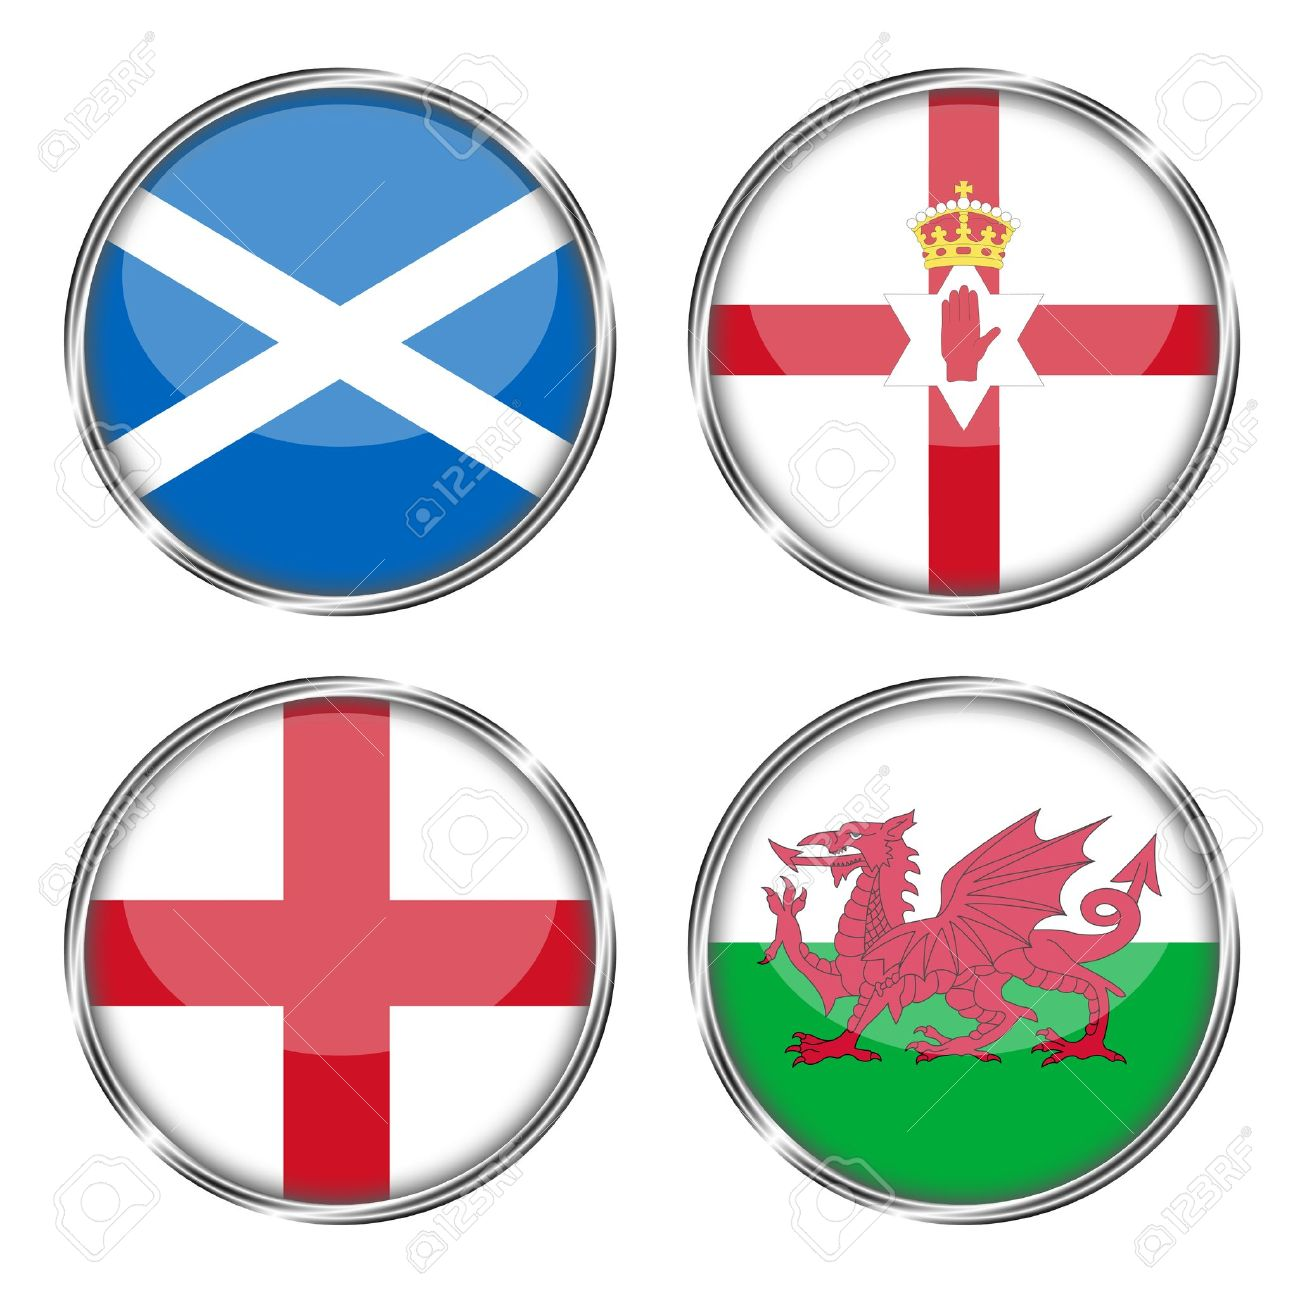 button flag of scotland, norther ireland, england, wales Stock Photo - 10439216